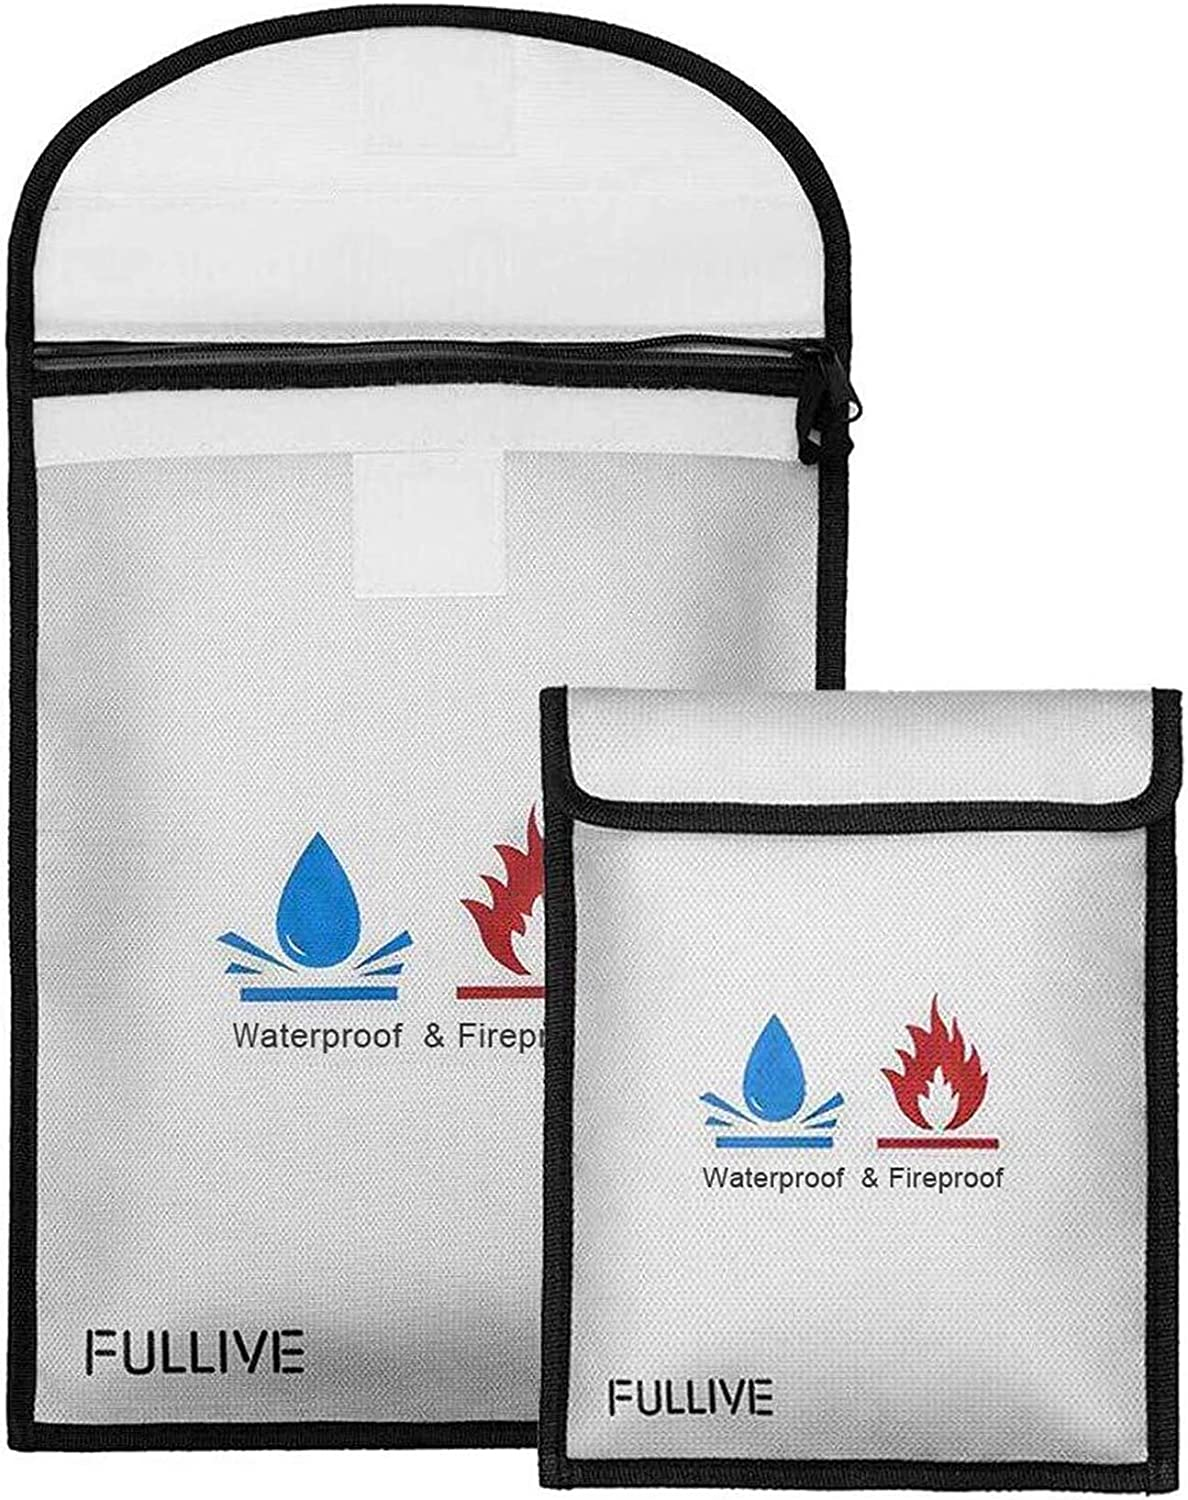 Fireproof Water Resistant Money Bag Envelope Safety Document Bag File Pouch Case